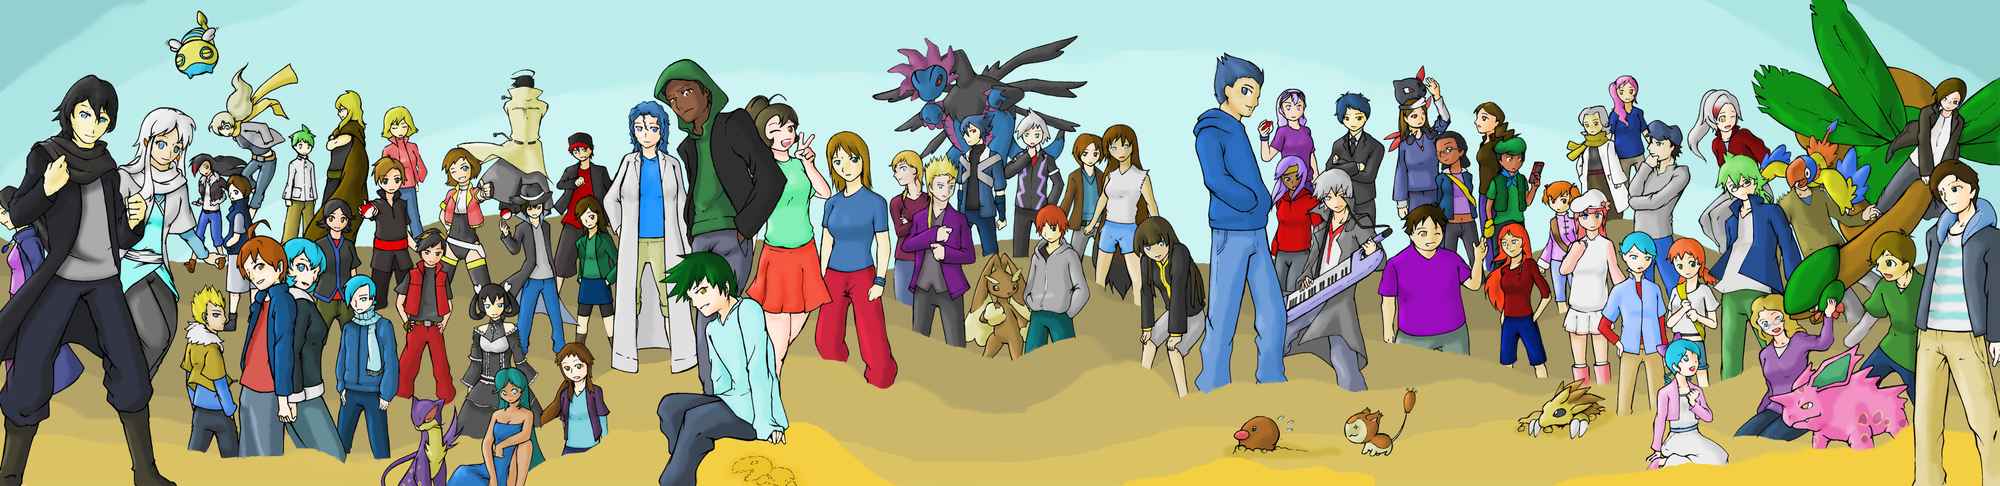 Rsz 1waapt group shot 2012 by pikaninja7-d5rwv05 (1).jpg